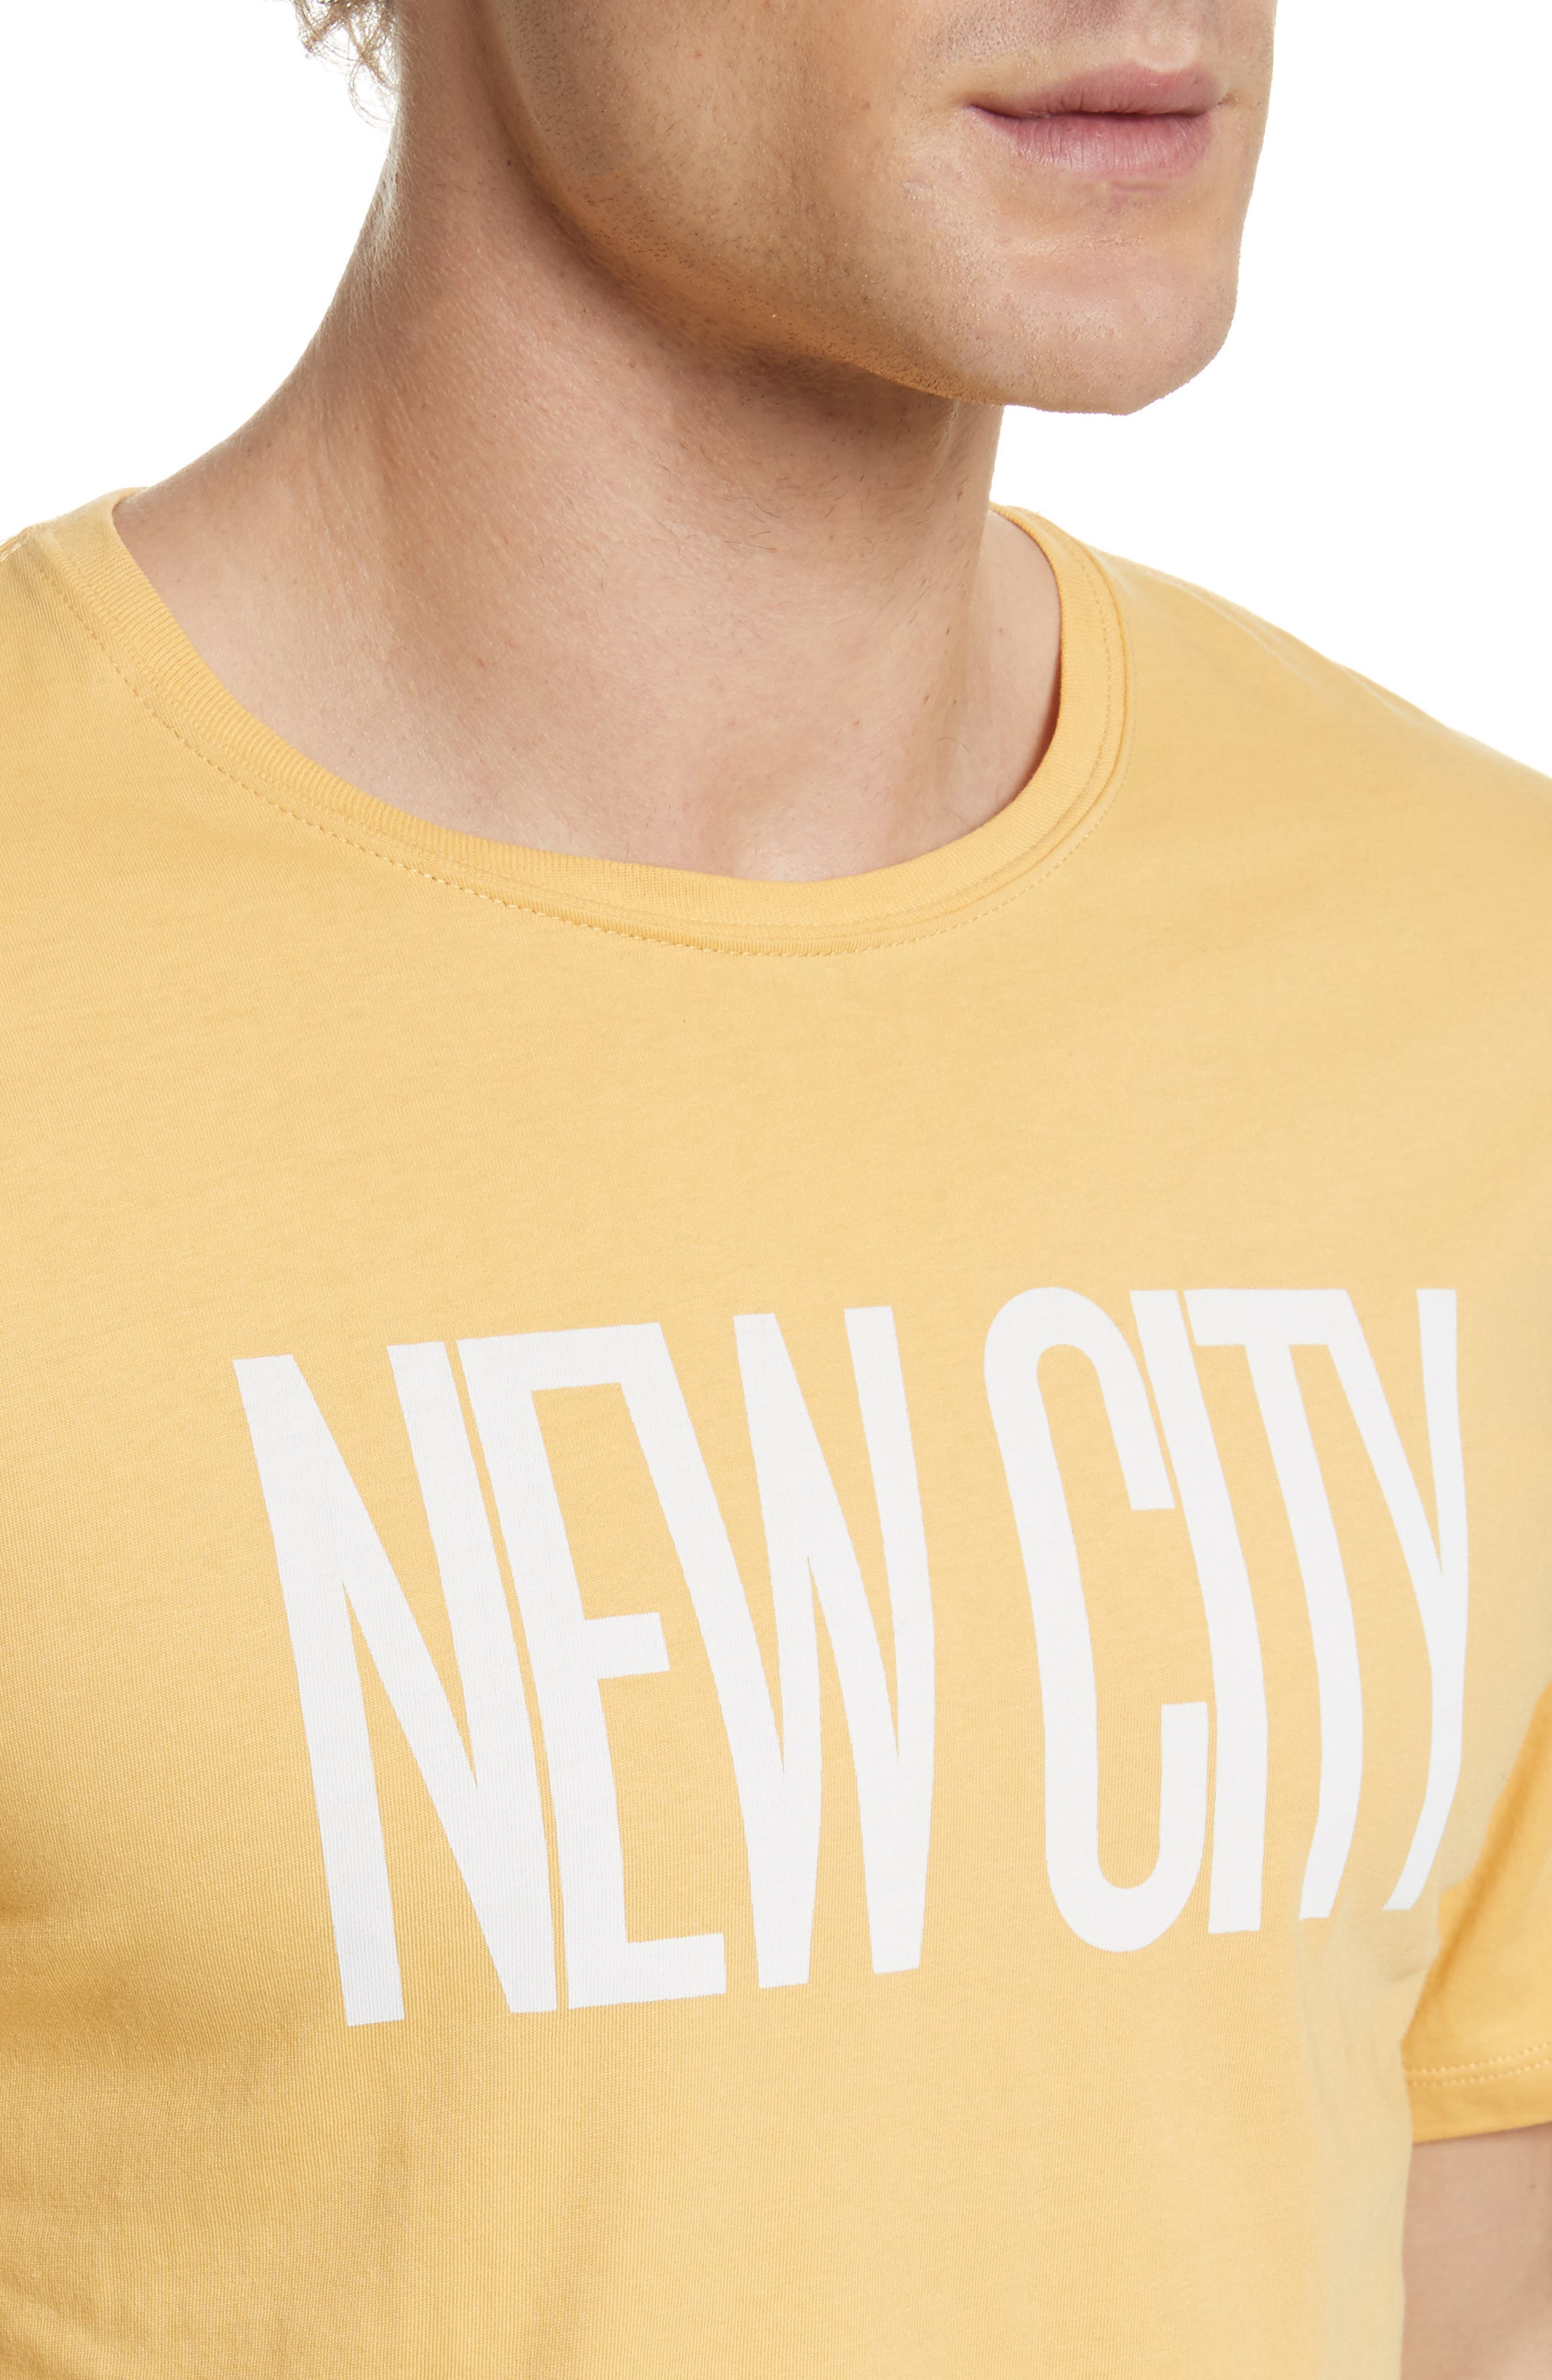 New City Graphic T-Shirt,                             Alternate thumbnail 4, color,                             Dusty Amber